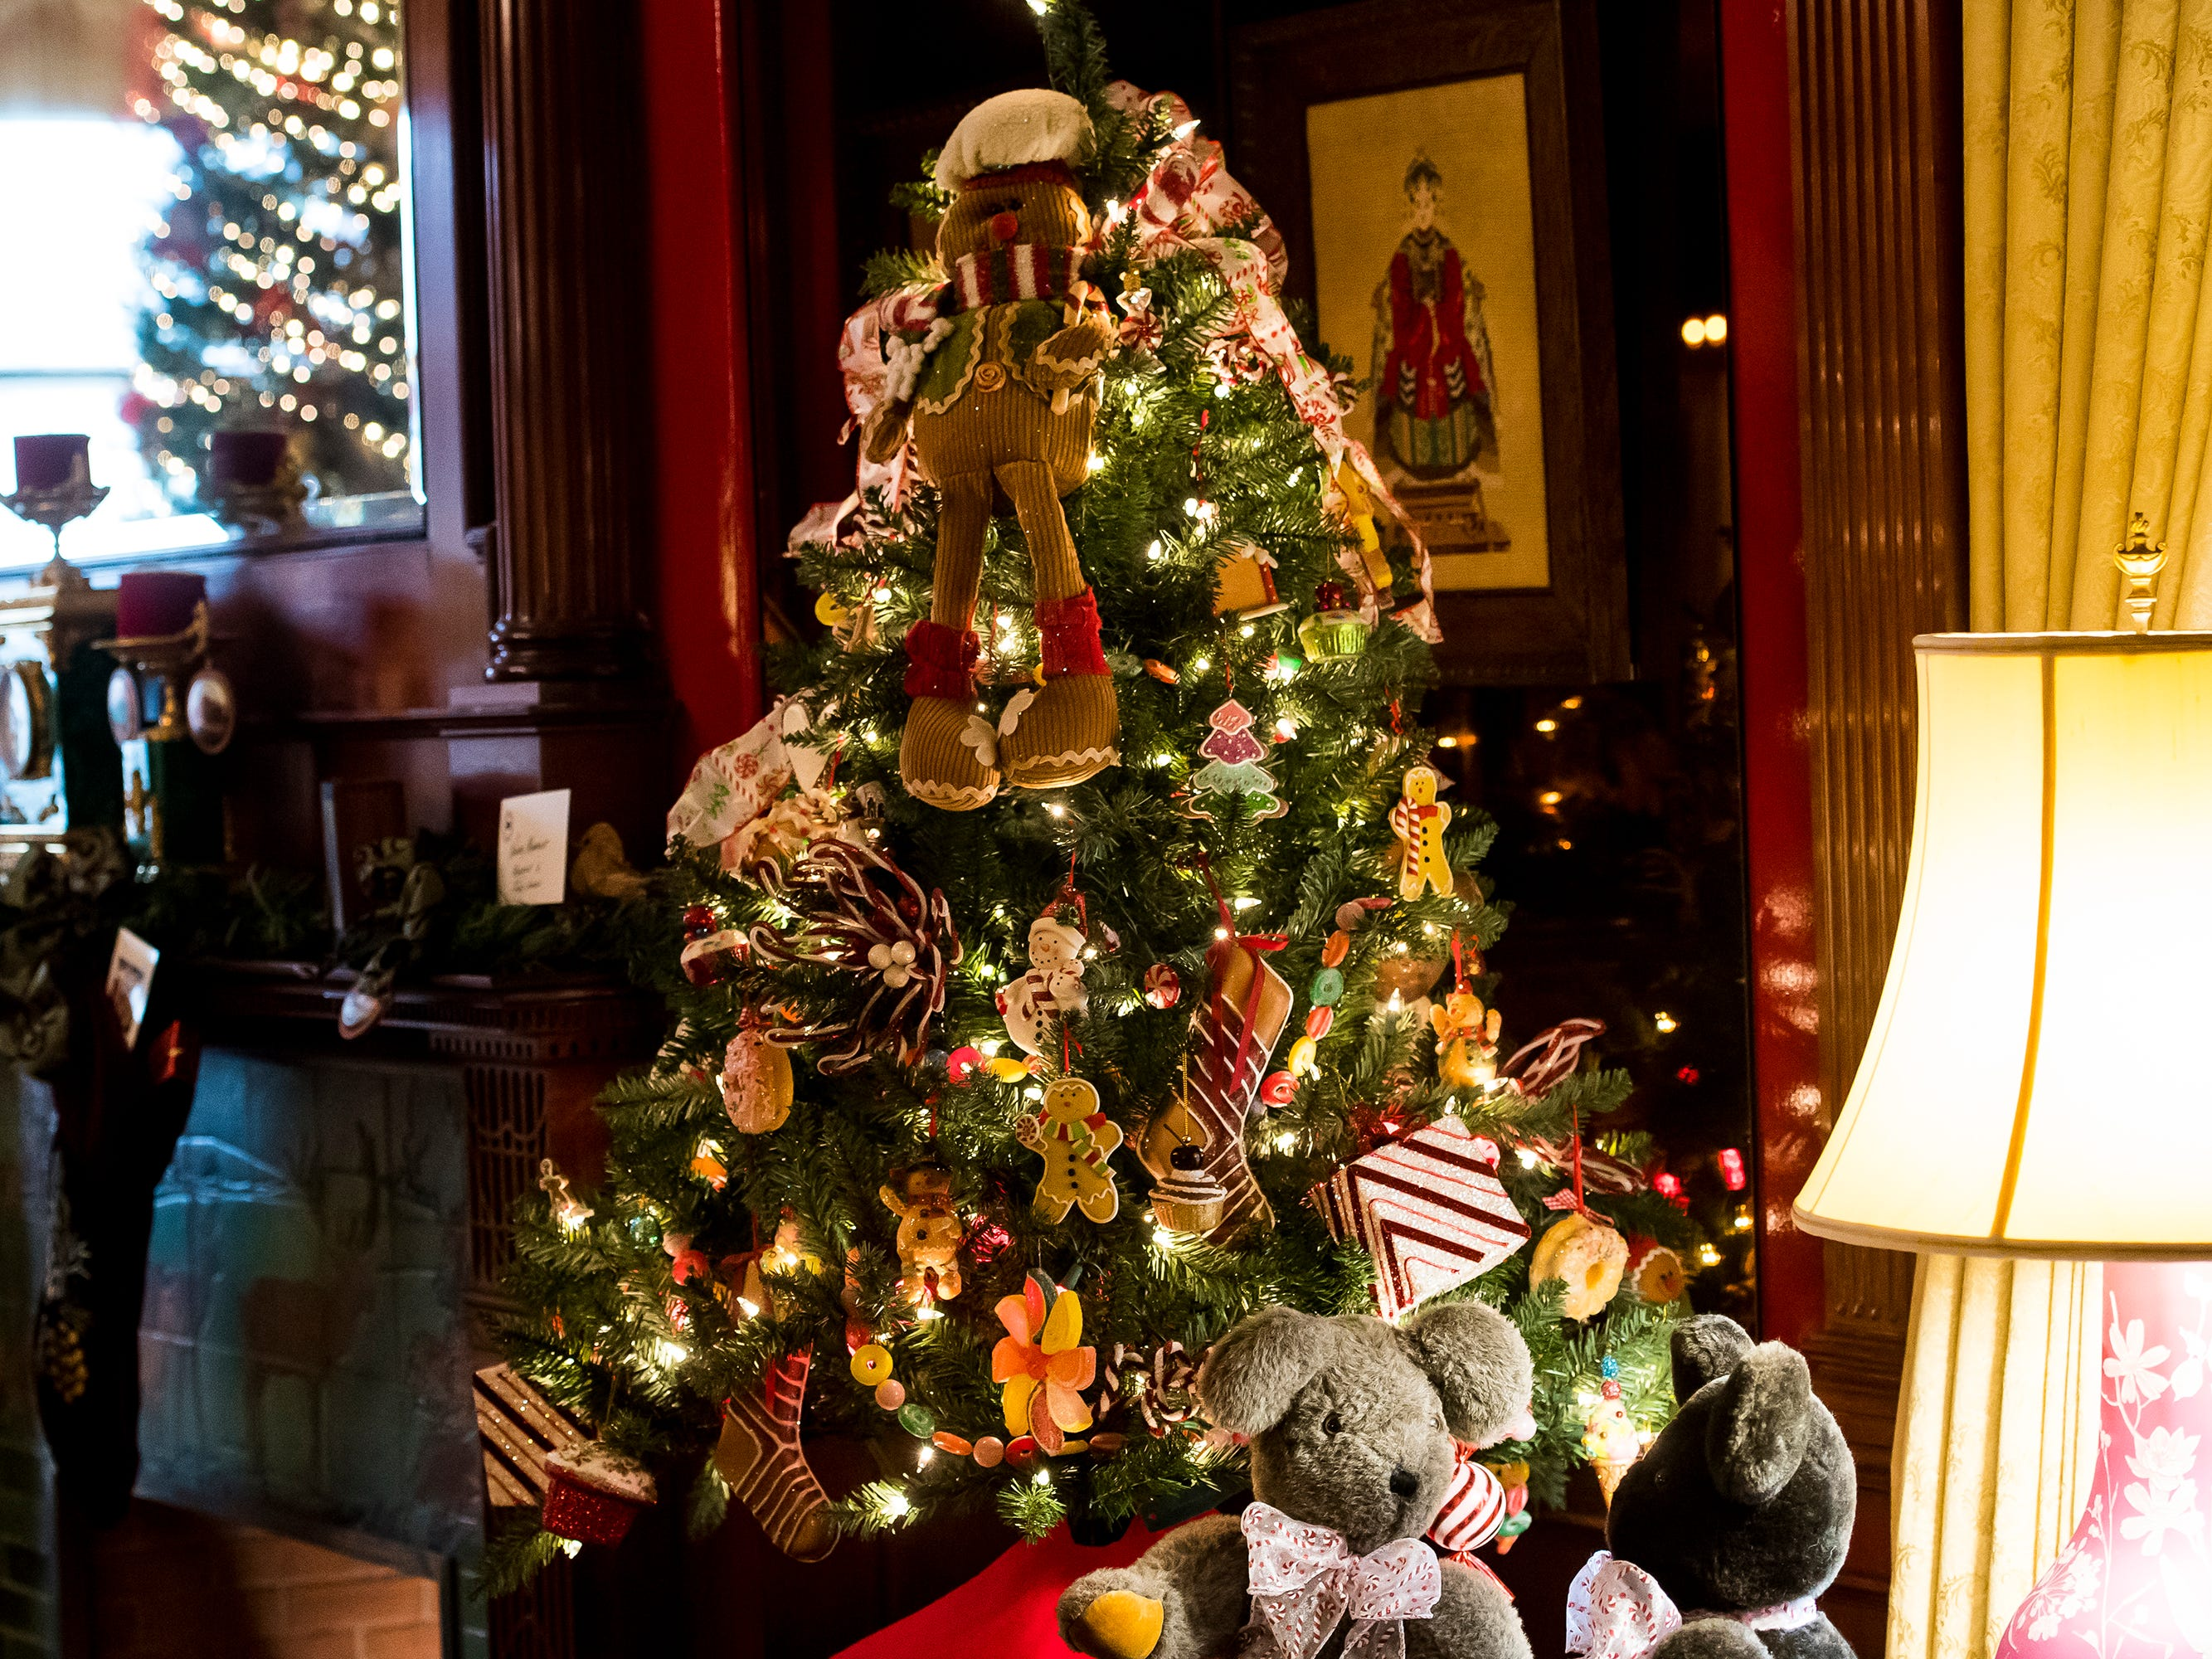 Hanover Home and Garden decorated this gingerbread-themed tree several years ago and it is still a part of the Warehime-Myers Mansion Christmas tree tour in Hanover. Tree tours are currently being offered and a schedule can be found on the Hanover Area Historical Society's Facebook page.